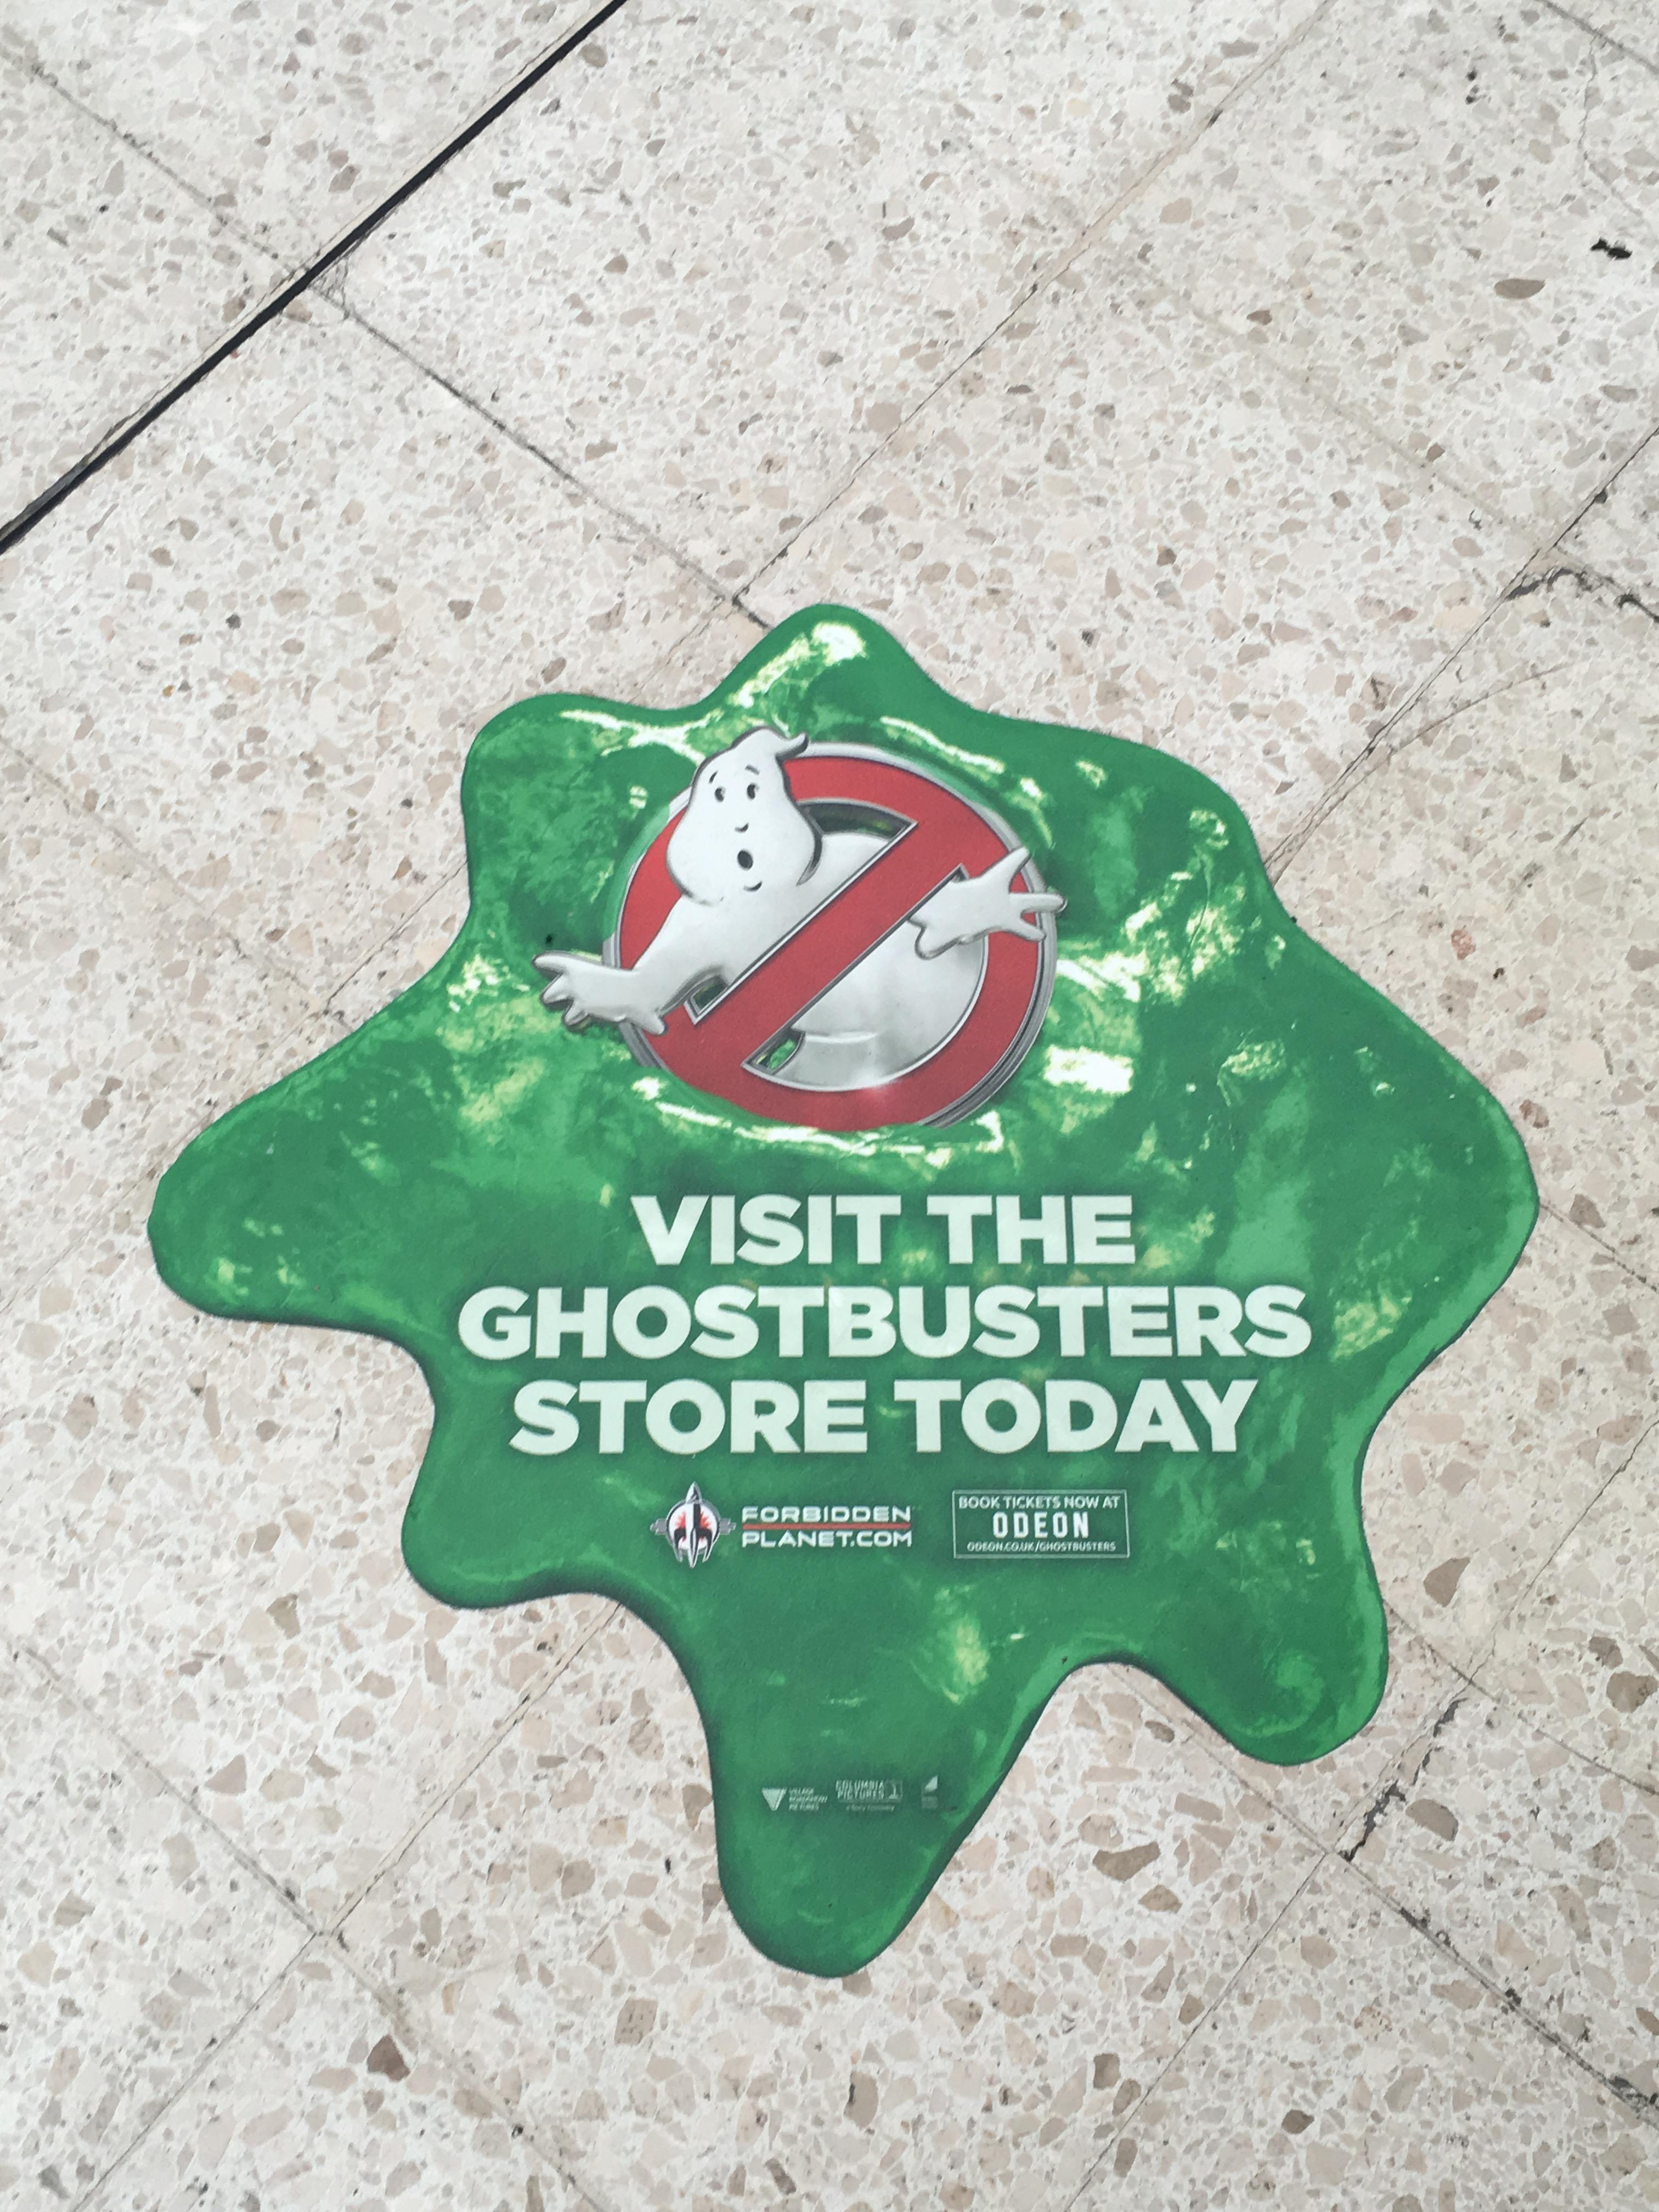 Ghostbusters-PopUp-01a.jpg